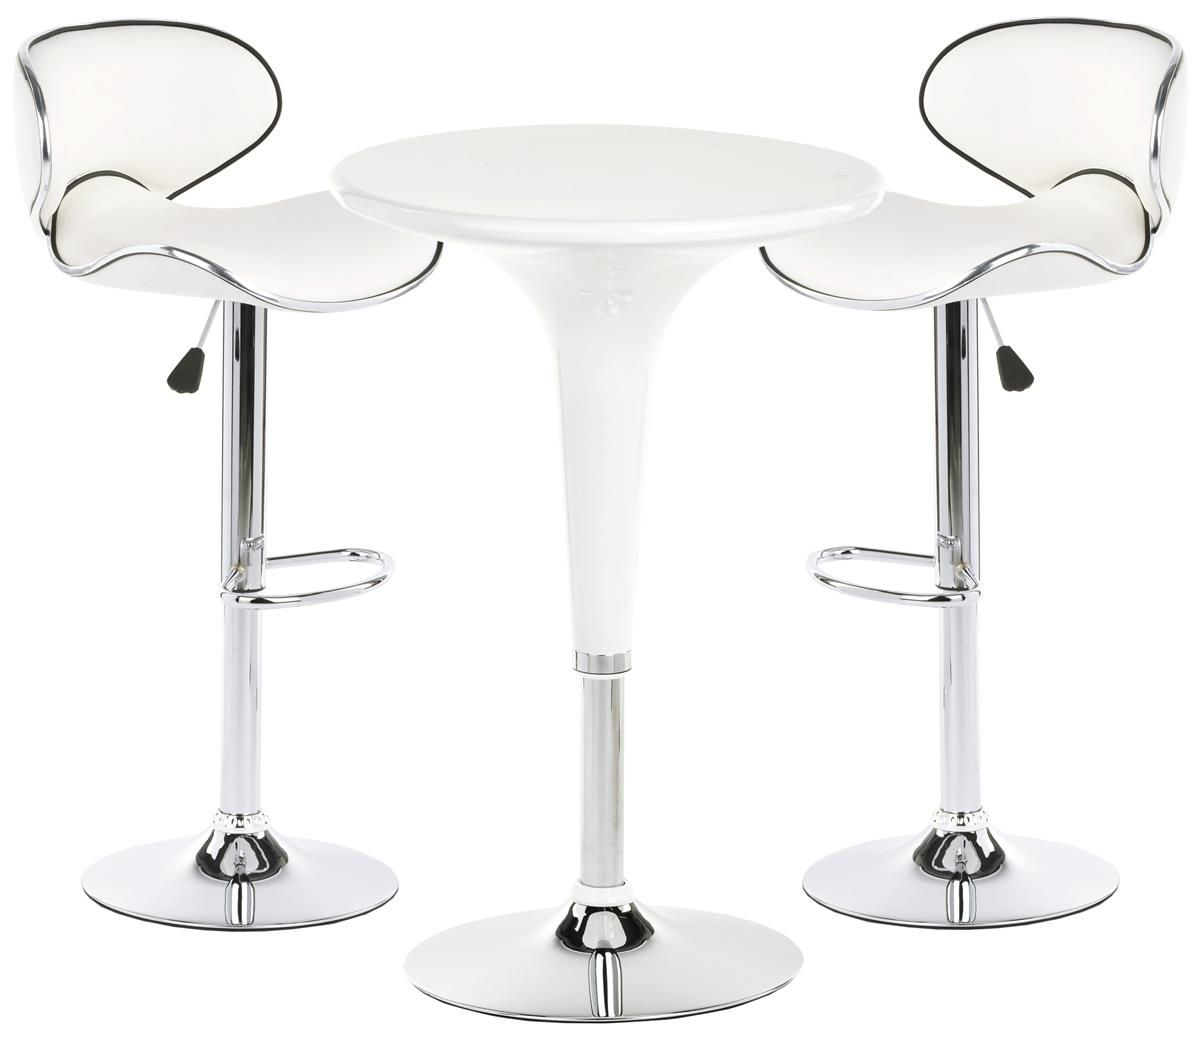 Pub Table Set With 1 Round Cocktail Table, 2 Adjustable Leatherette Stools    White